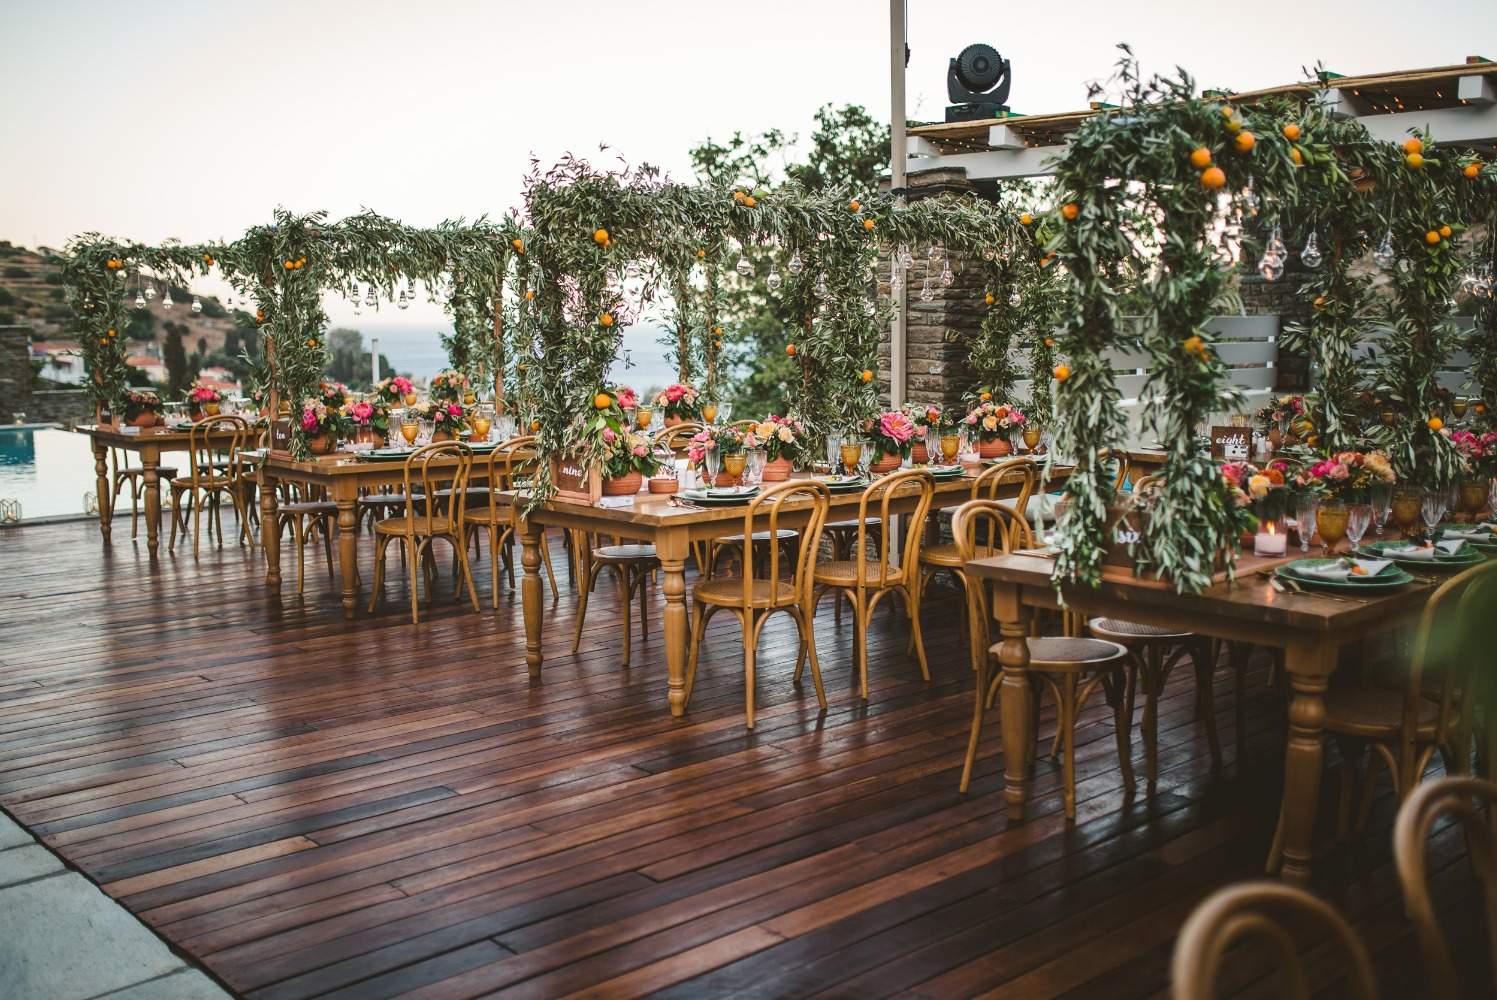 outdoor wedding tables with floral covered pergolas over them